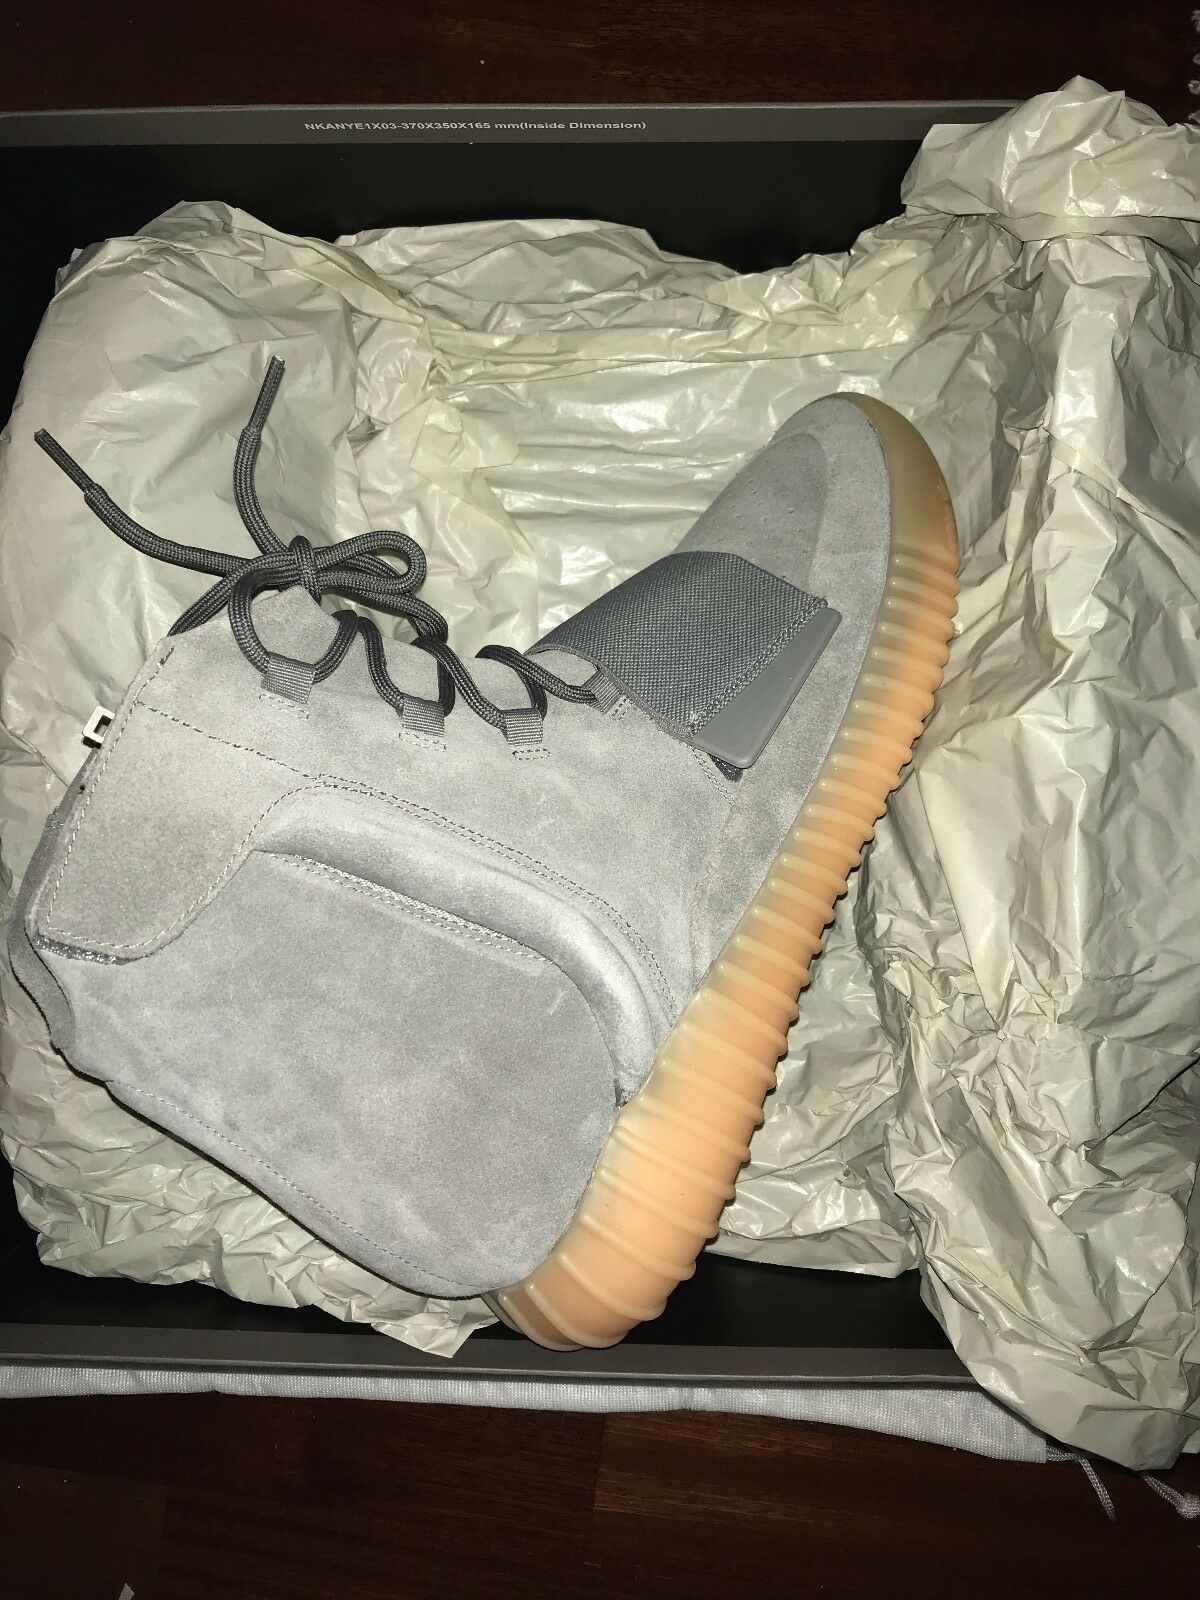 8ccc953abd6d DS 100% Authentic Adidas Yeezy 750 Grey Glow Size 13.5 Boost Gum  ntaipa7471-Athletic Shoes